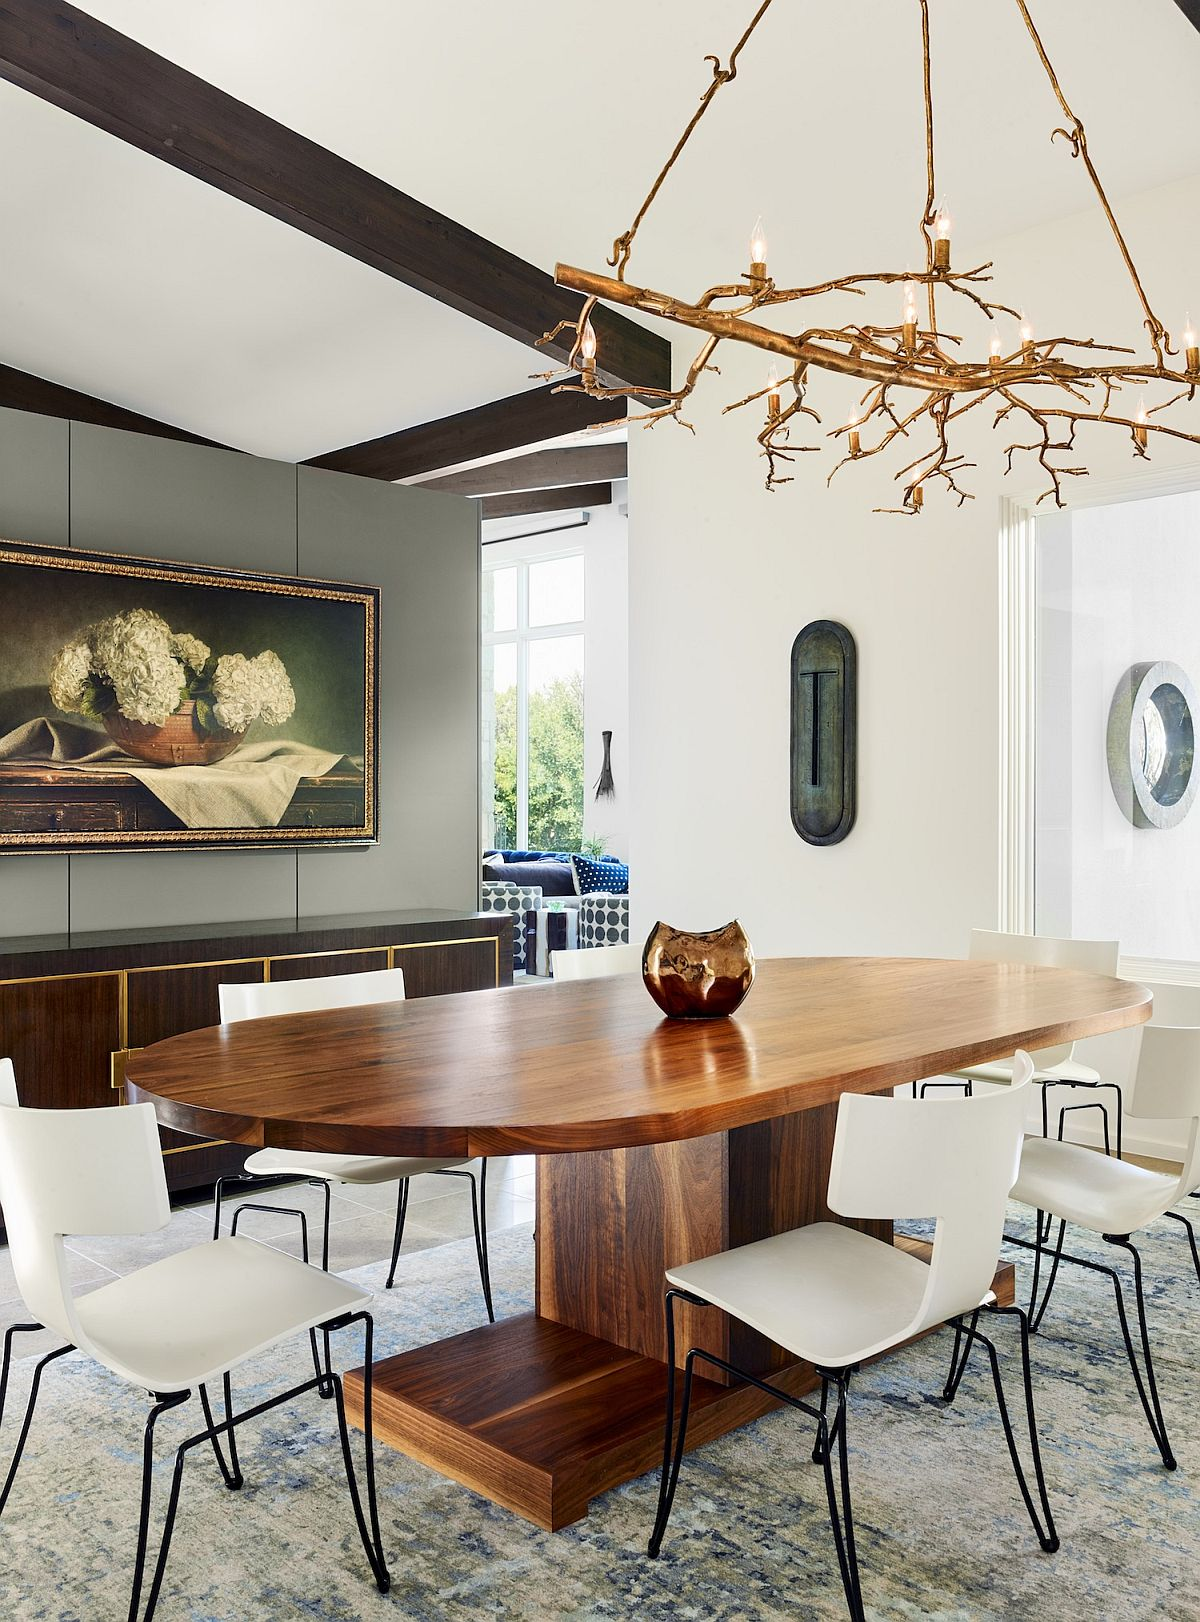 Fabulous custom lighting fixture in the dining room with a large, oval wooden table